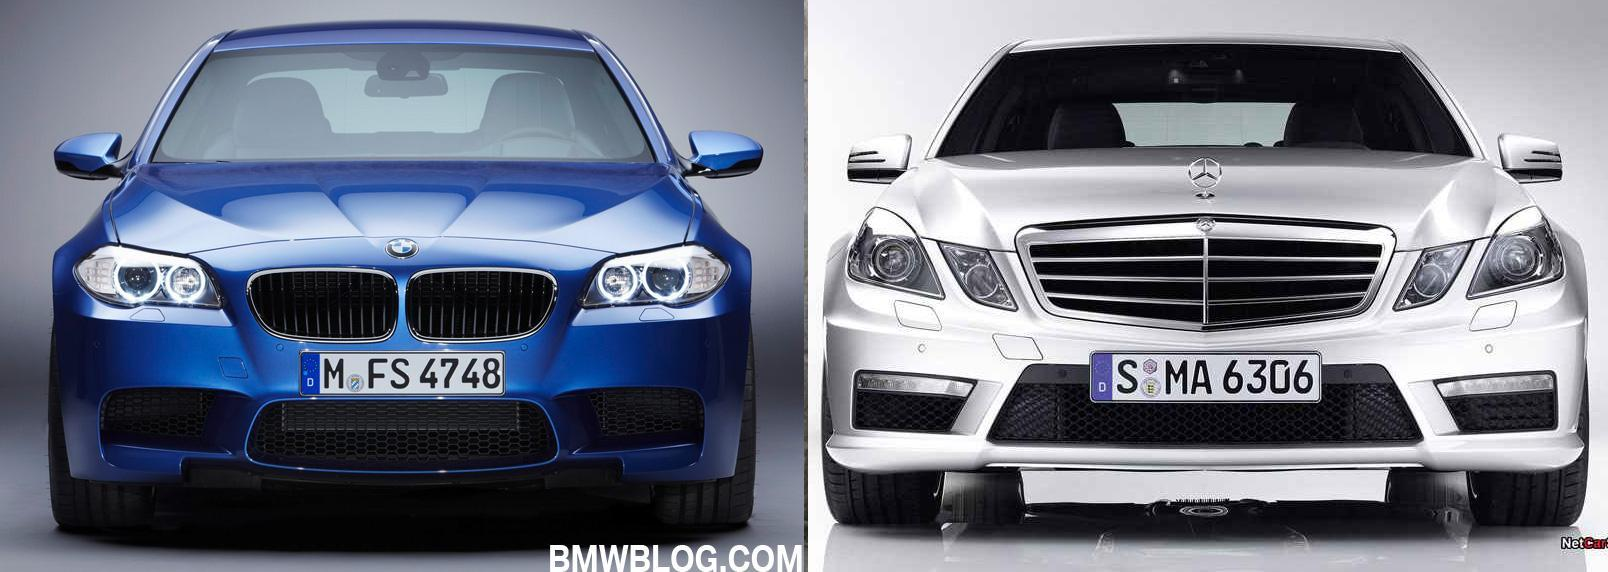 Mercedes Benz or BMW?